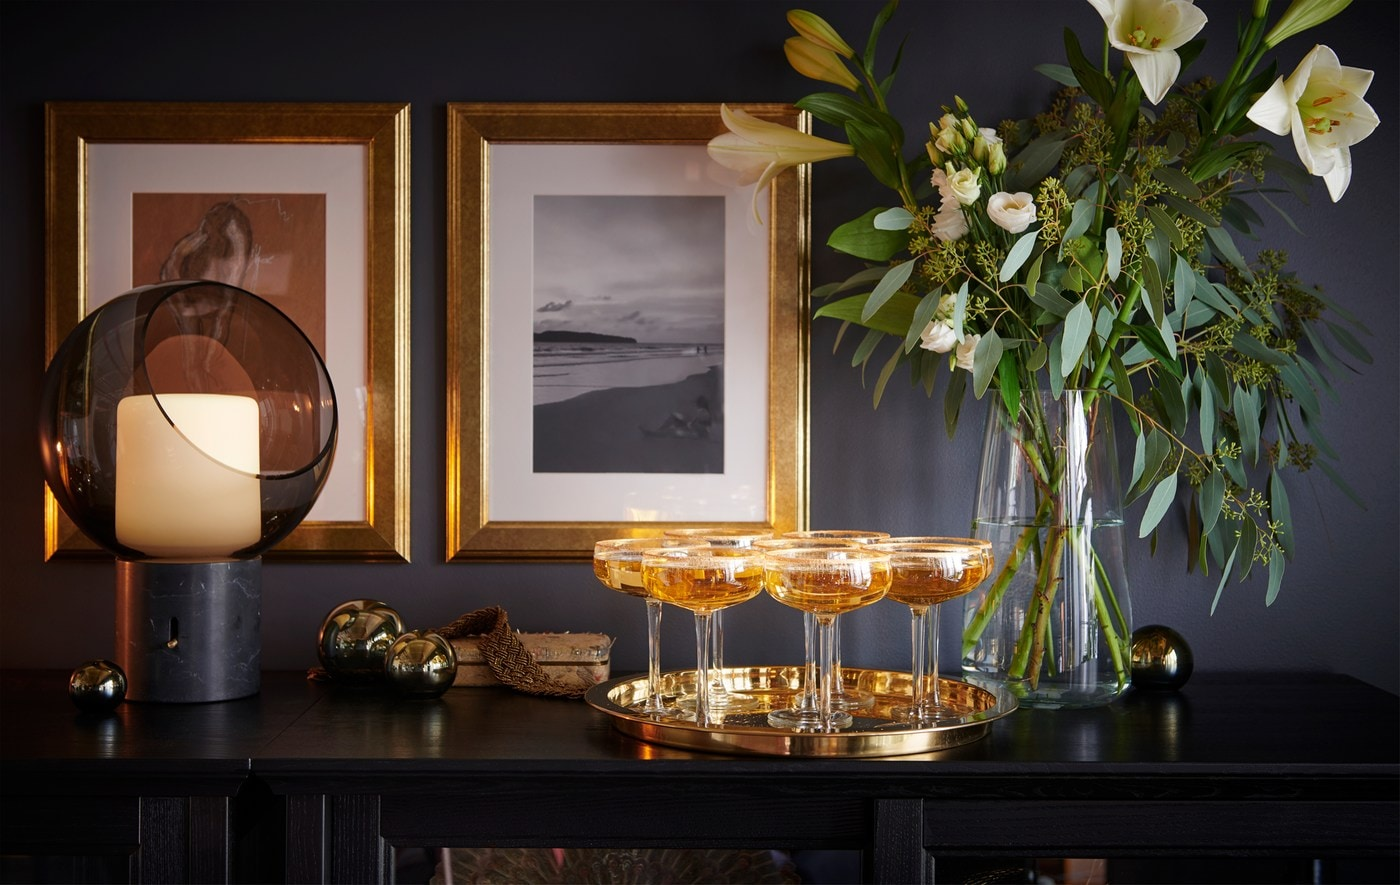 Champagne glasses in a golden tray on a black table between an EVEDAL lamp and a vase of flowers.